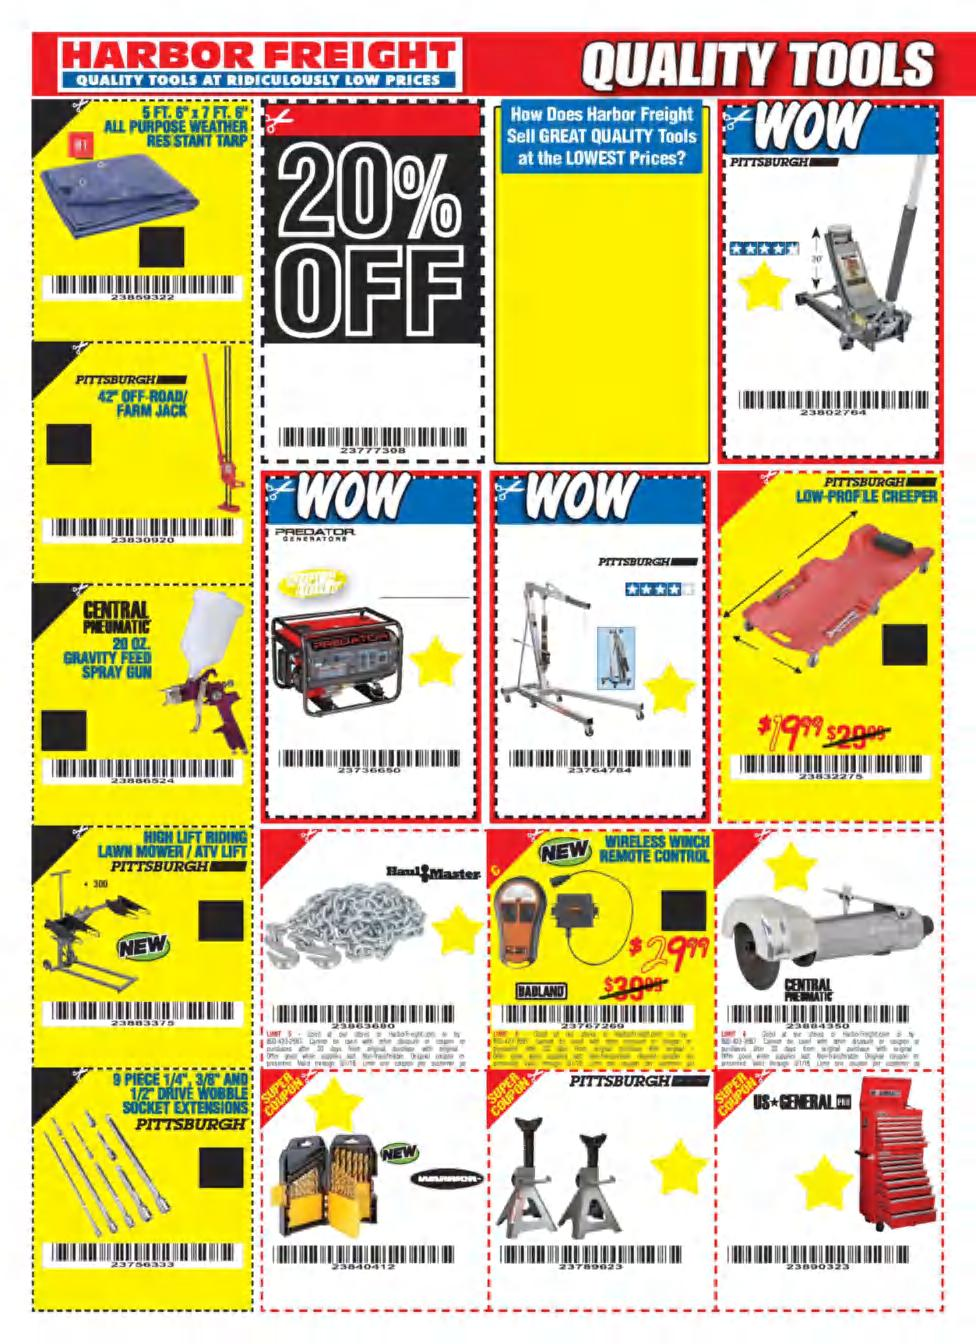 Cheap Truck Challenge 5 Pdf Harbor Freight Camo Atv Winch Wiring Diagram Super Coupon Limit 6 Good At Our Stores Or Harborfreightcom By Calling